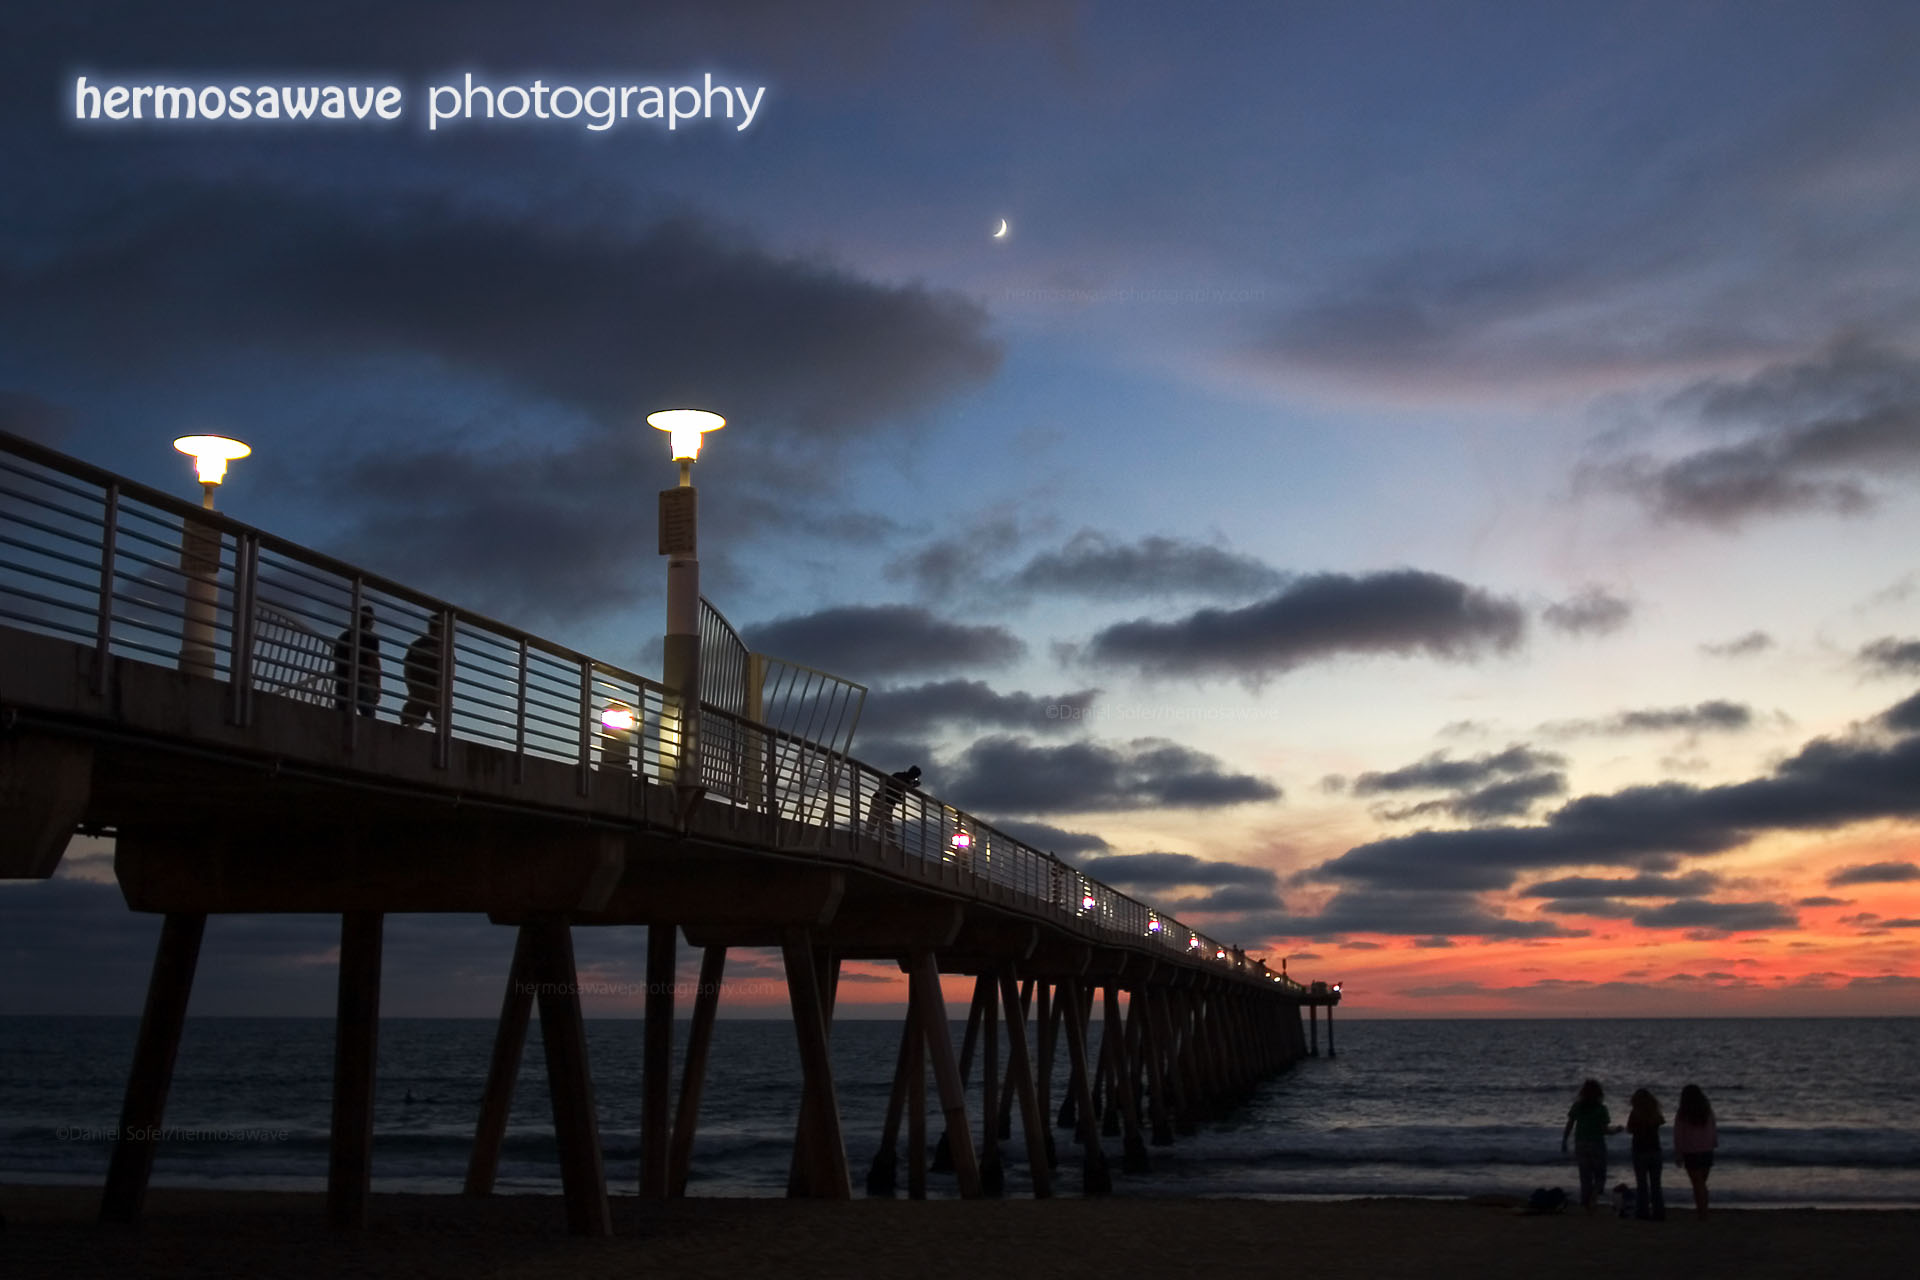 Pier, Moon, & Clouds